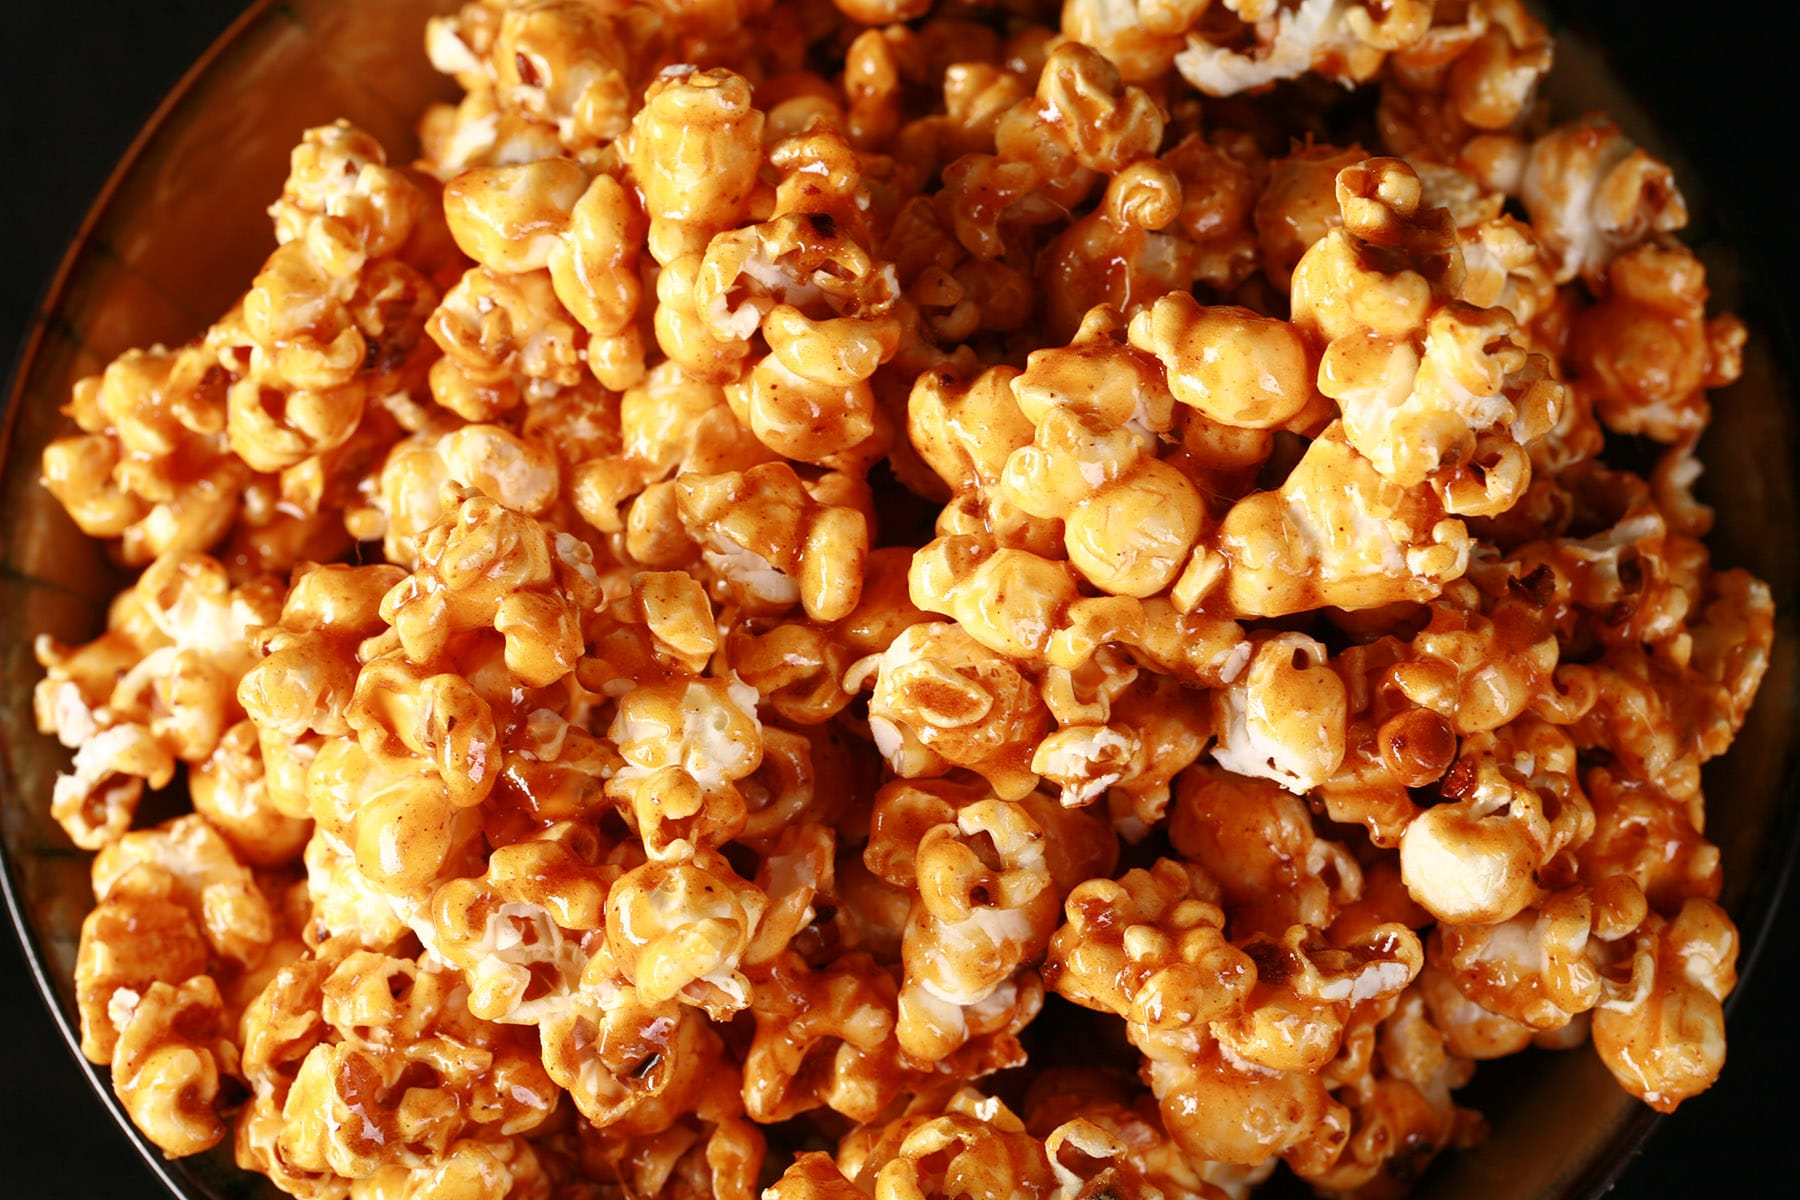 Close up photo of a bowl of caramel popcorn. Spices are visible throughout the caramel.